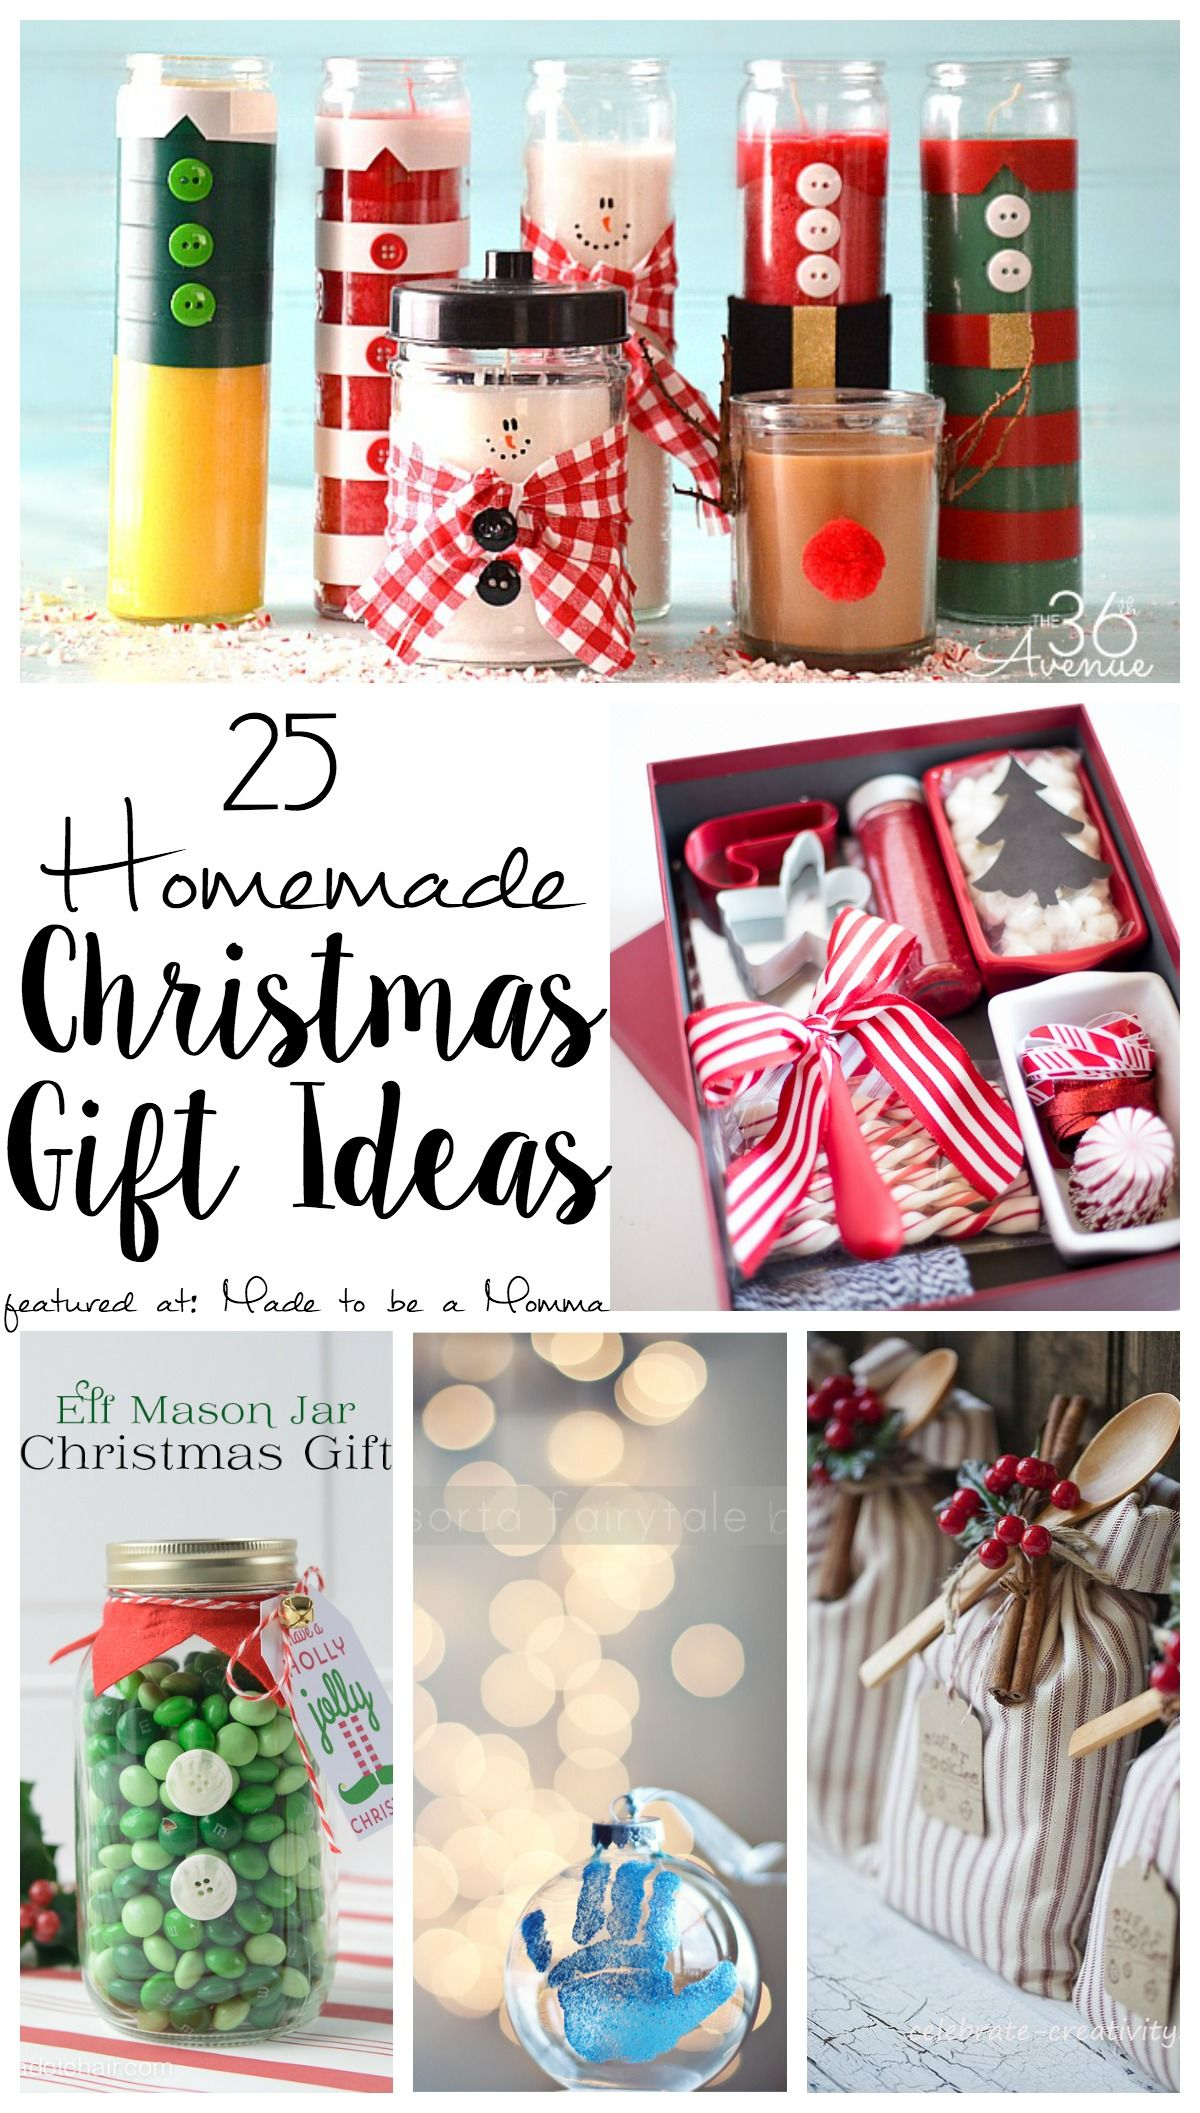 25 homemade christmas gift ideas bloggers fun family projects need a few do it yourself christmas gift ideas try some of these sugar scrubs ornaments and more to really show your family how much you care solutioingenieria Images